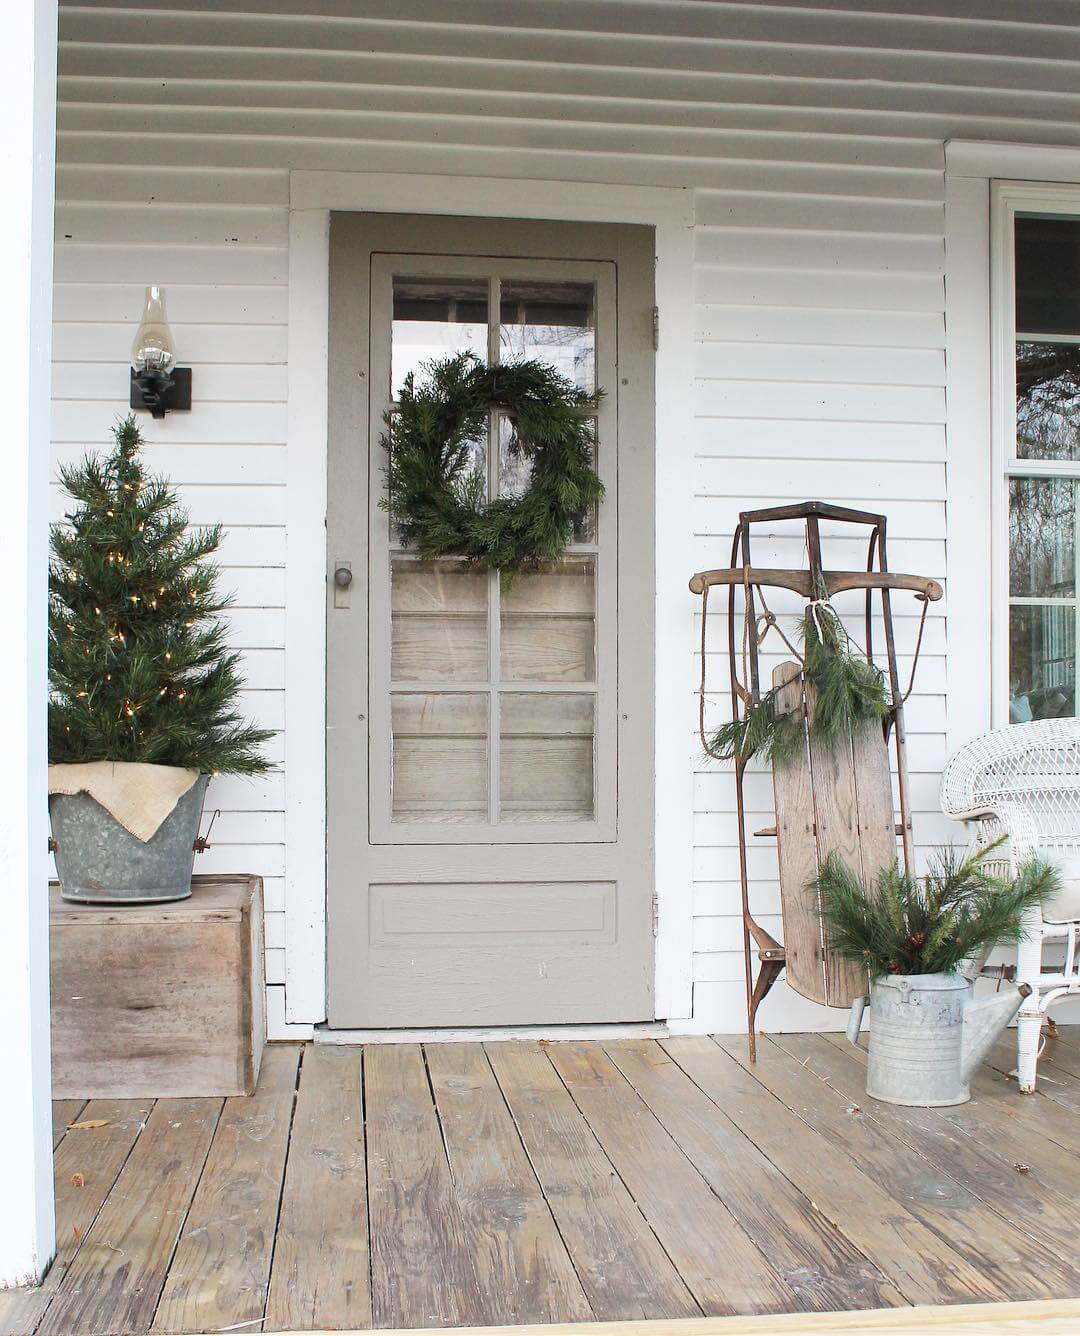 Cookies And Cream Farmhouse Front Door Ideas : farmhouse door - pezcame.com